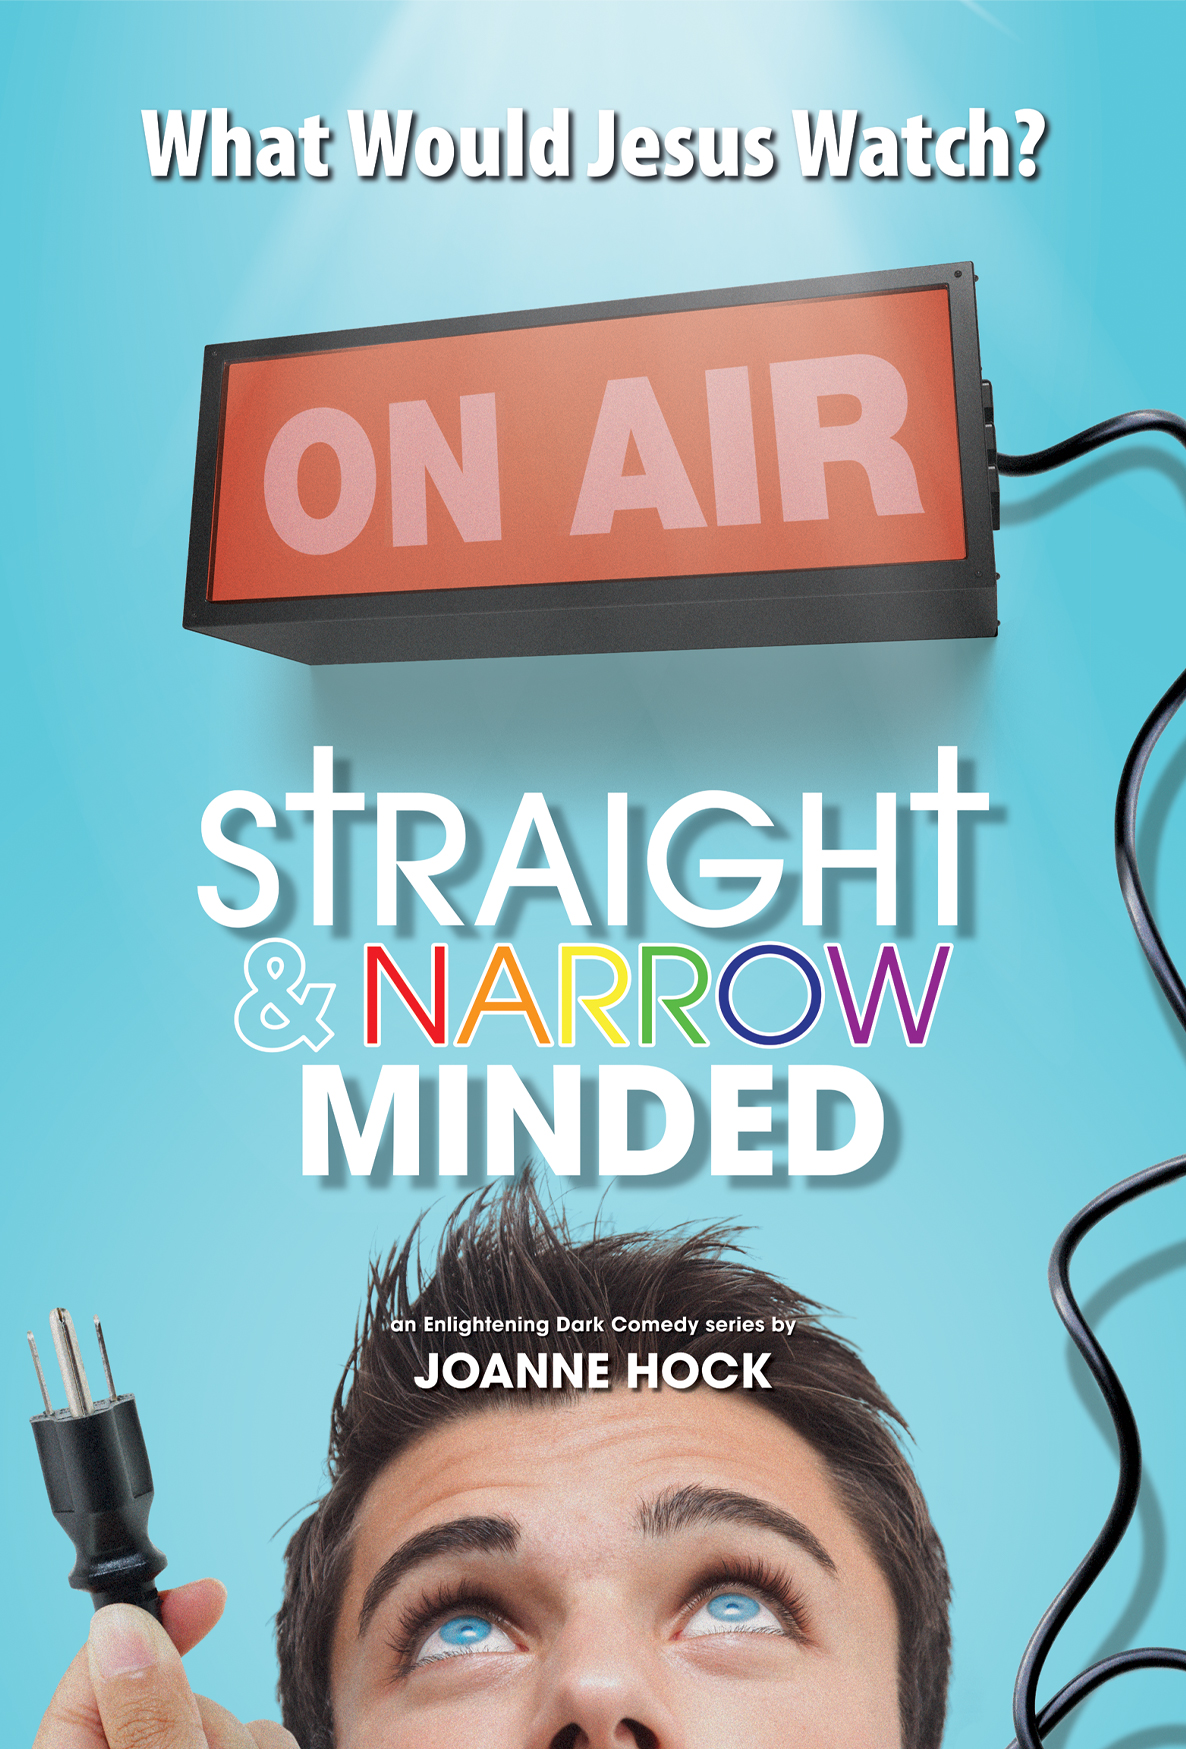 Joanne Hock, Joanne Hock Films, Director, Southern Female Directors, comedy, religious comedy, gay comedy